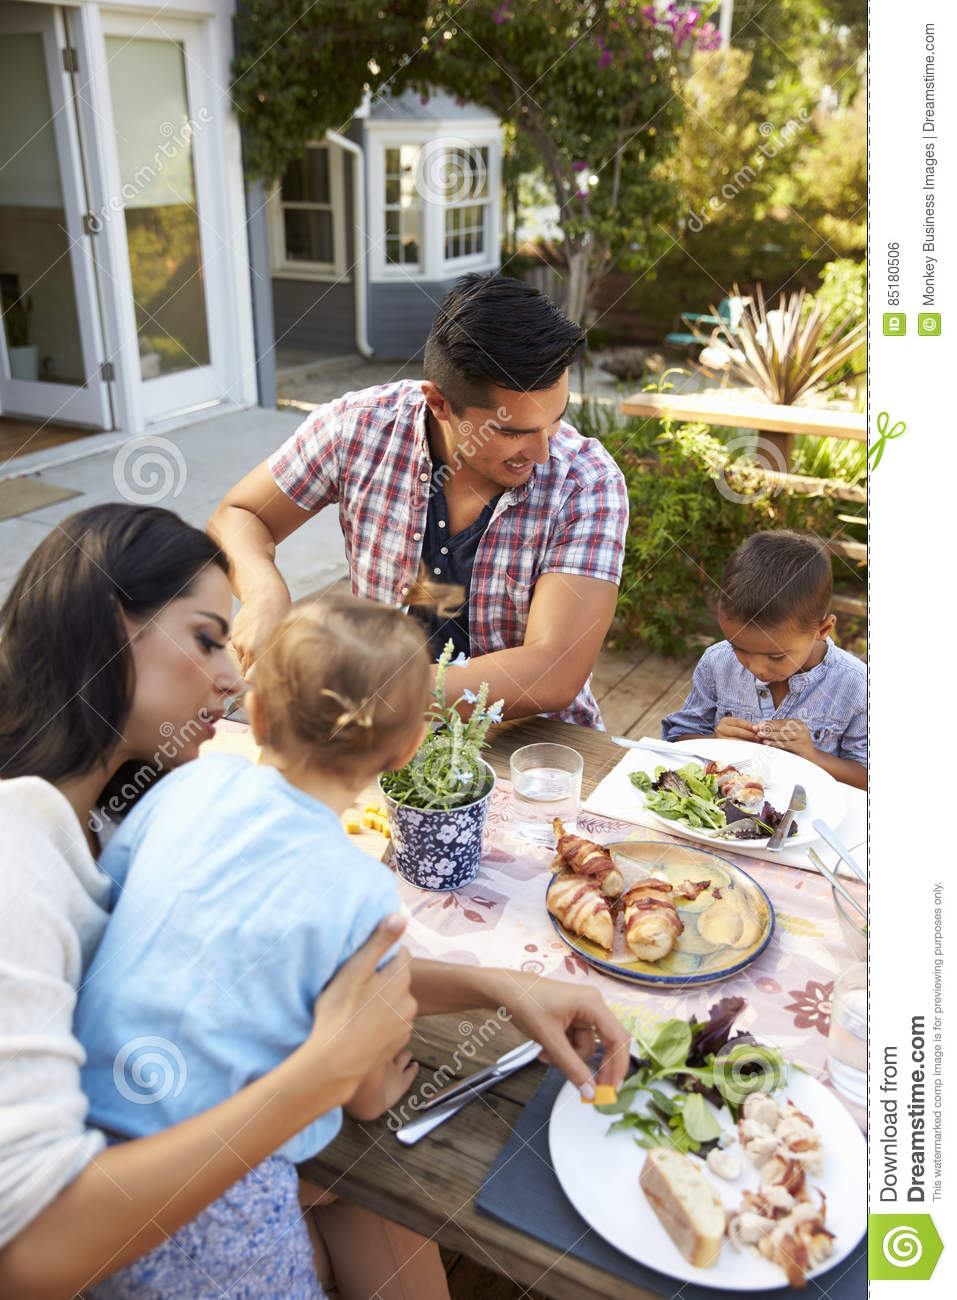 Family at home eating outdoor meal in garden together for Meal outdoors